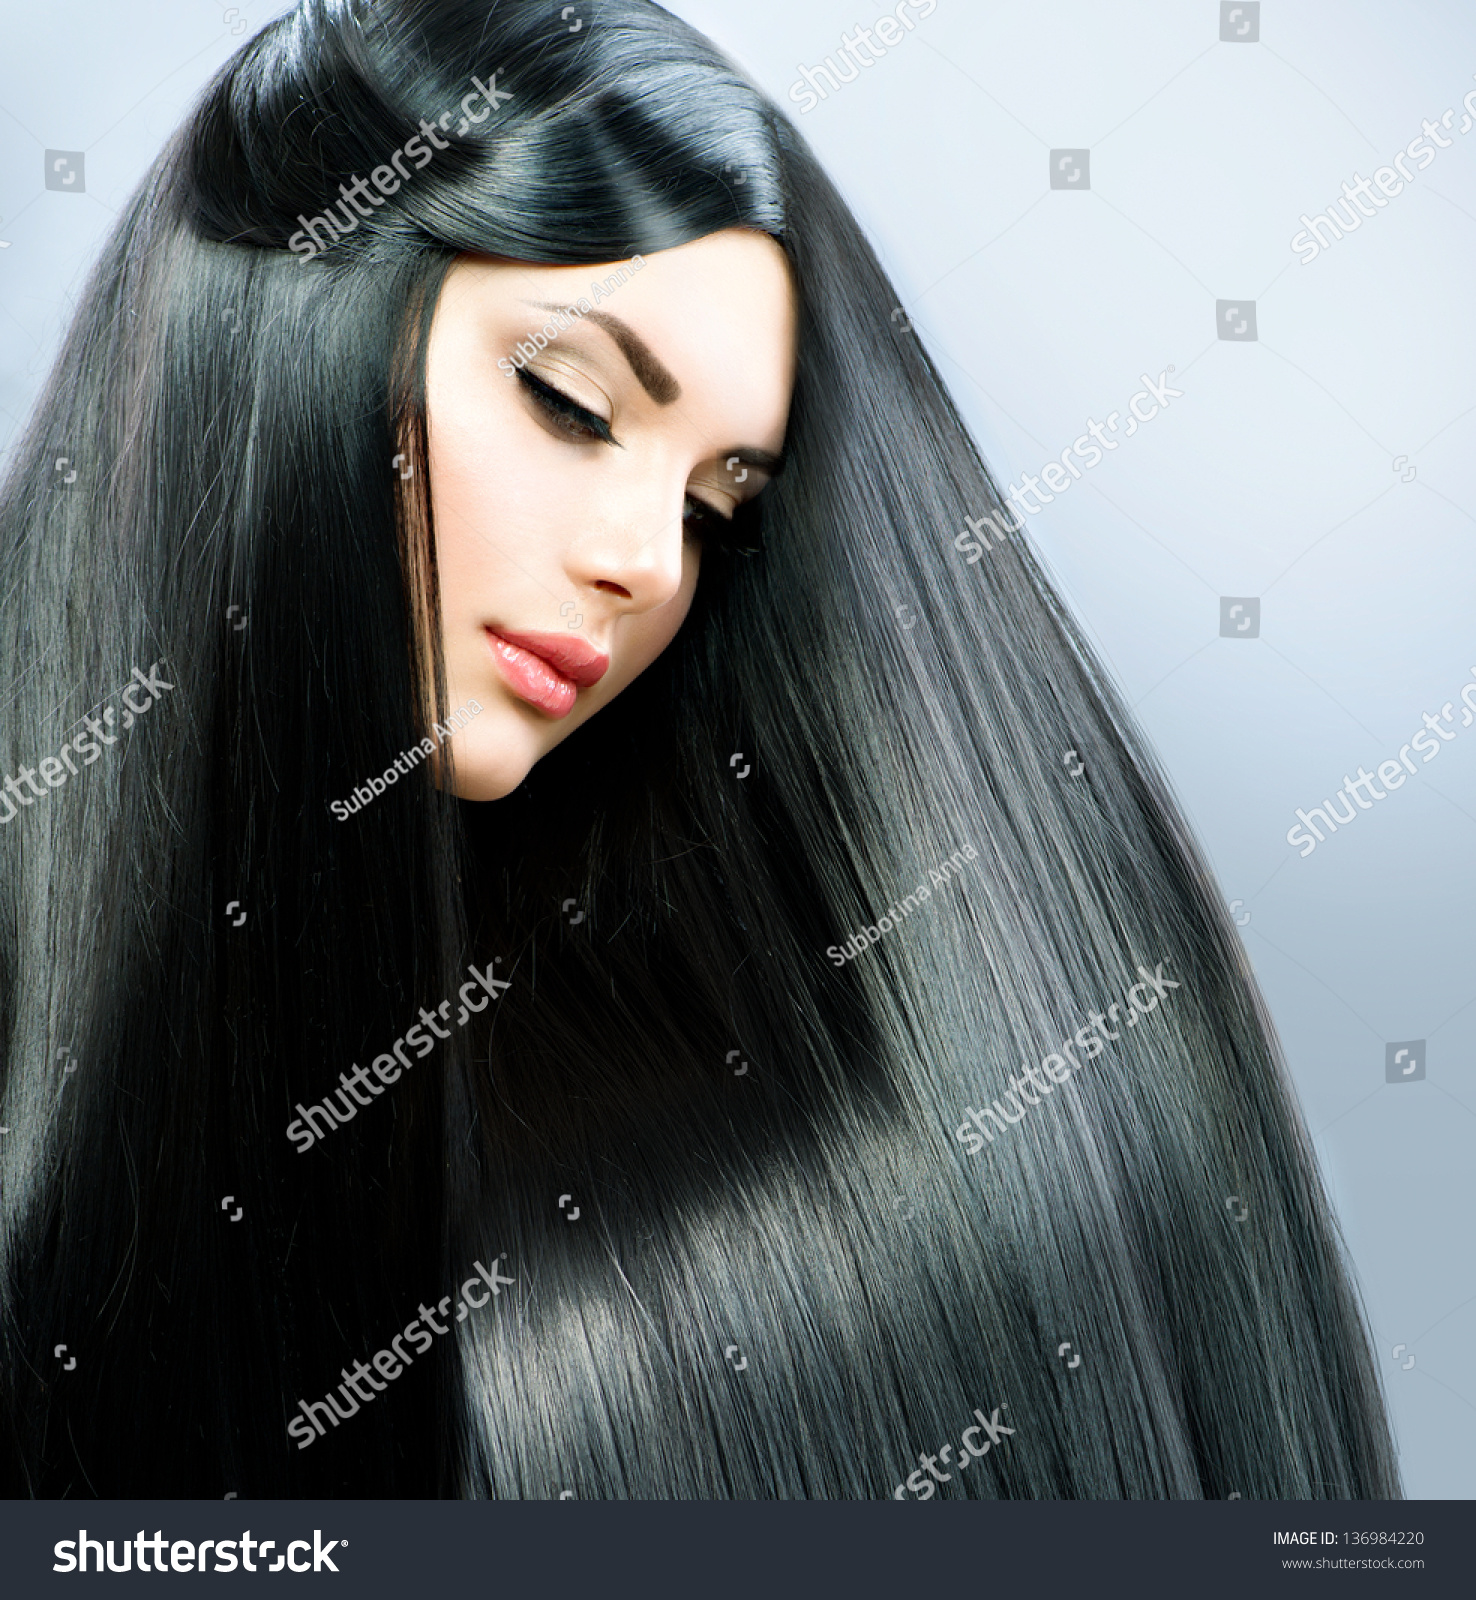 Beautiful girl with black hair consider